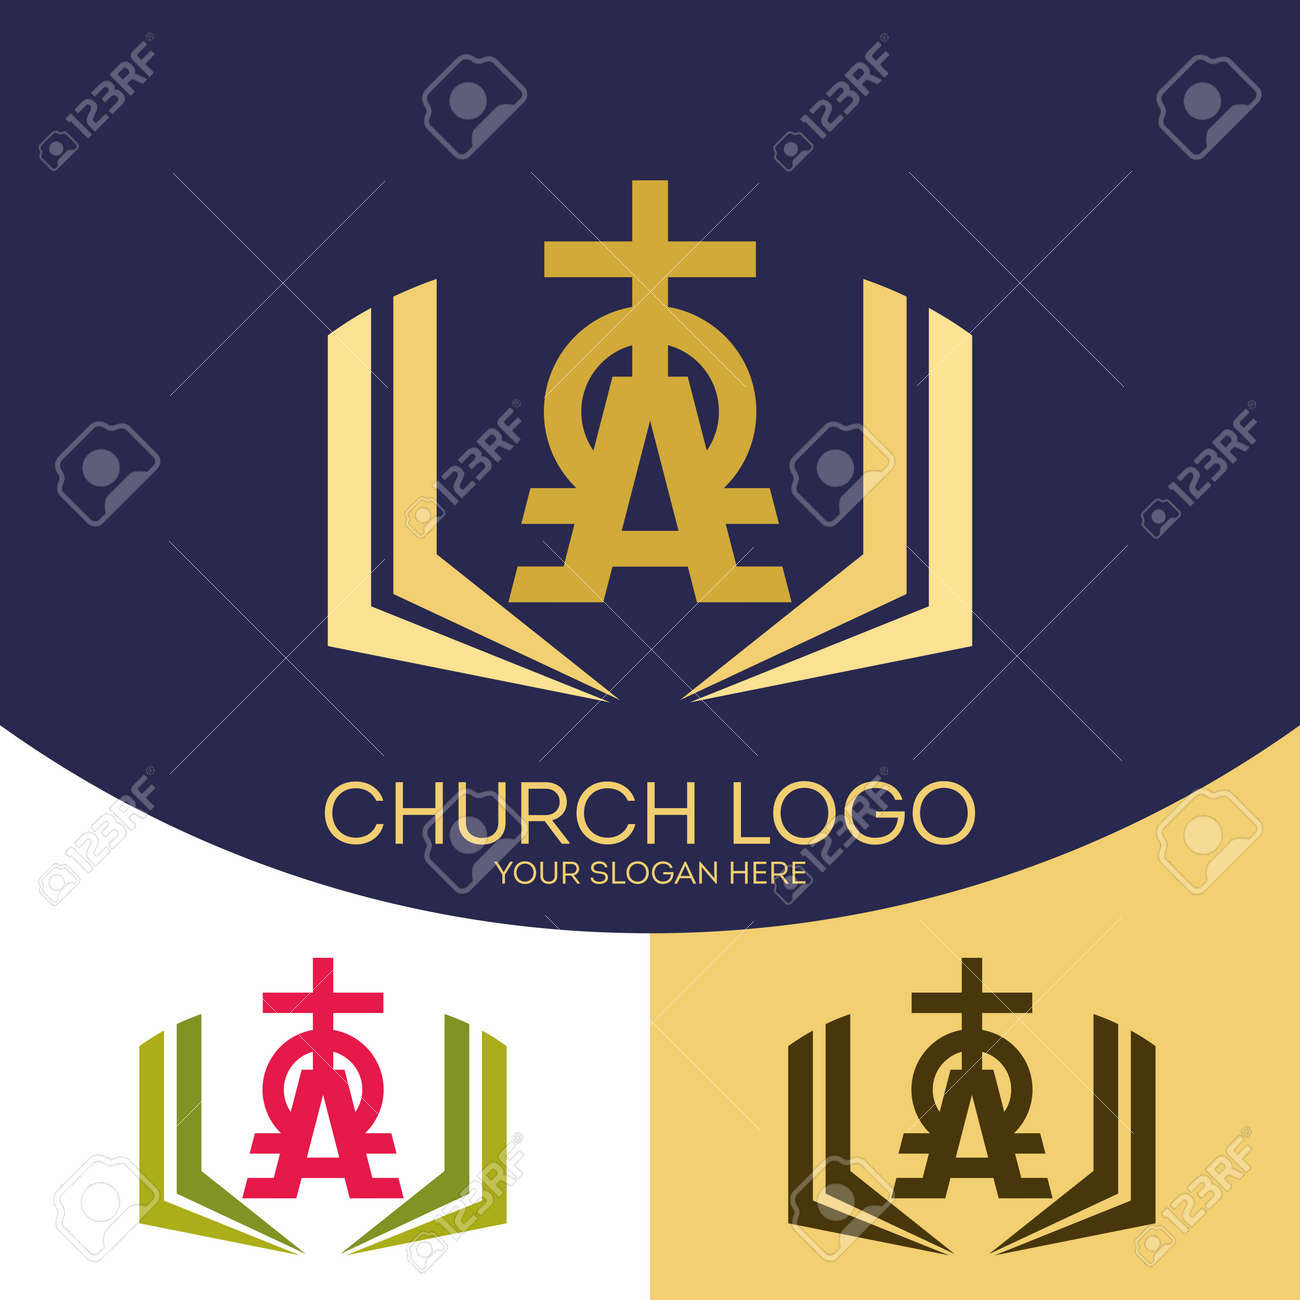 Church logo christian symbols the cross of jesus christ the church logo christian symbols the cross of jesus christ the holy bible and buycottarizona